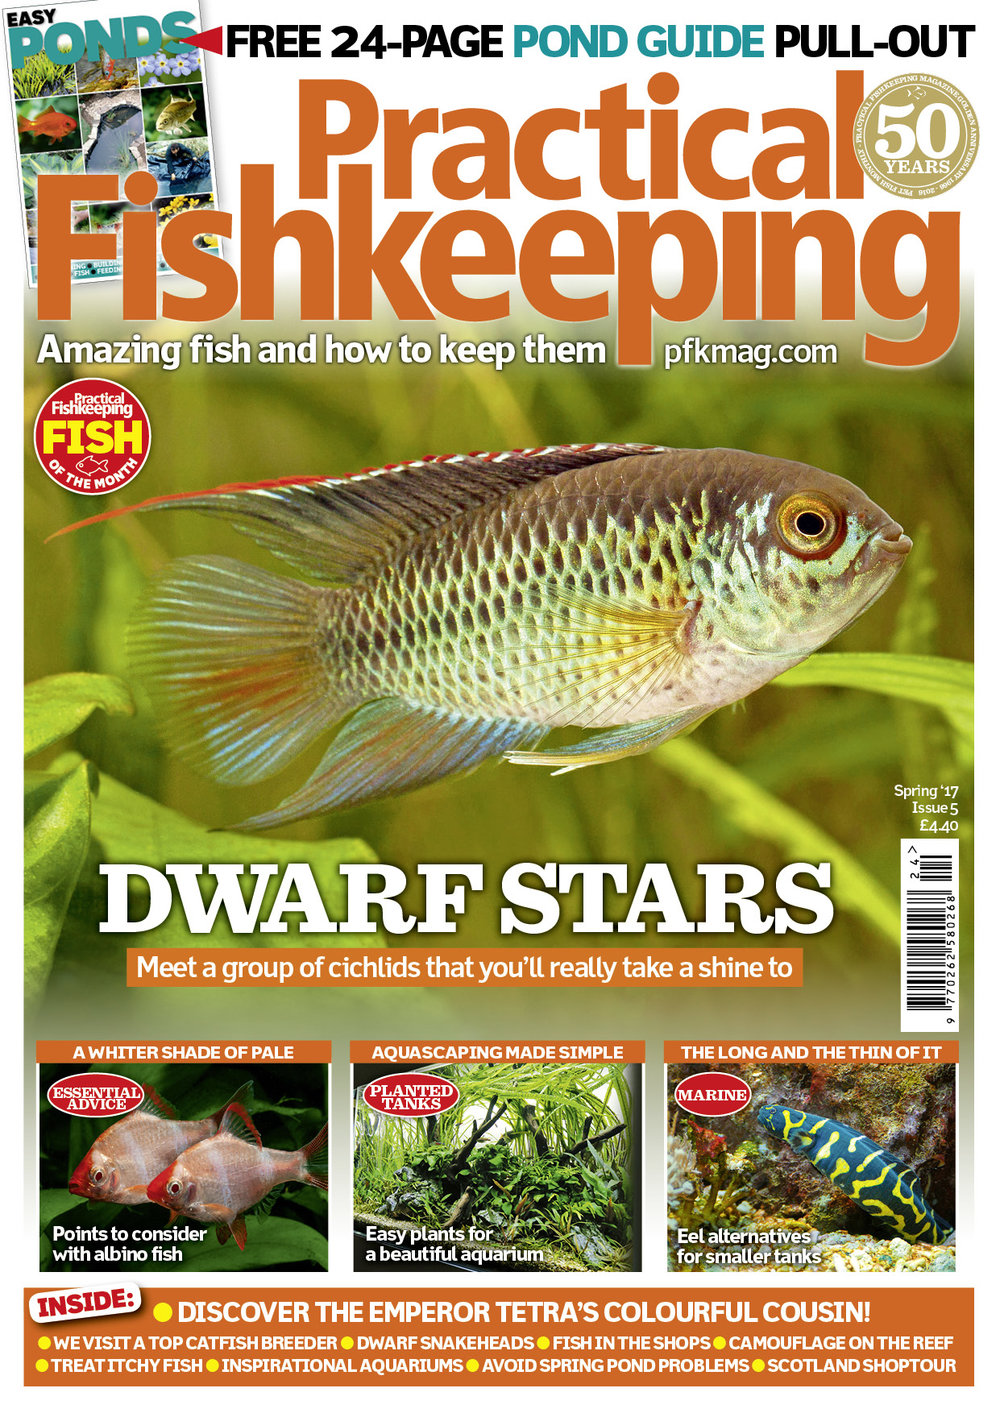 Our Spring 2017 issue includes a superb 24-page Easy Pond Guide, with all you need to know with planning, building, filters and equipment, plants, fish, heath and maintenance — so now you can get on and build that pond you've always wanted!    In the main issue we feature a group of smaller cichlids that you'll really take a shine to. We spotlight albino fish and the points to consider when keeping them; we visit a top catfish keeper and breeder and offer moray eel alternatives for smaller marine tanks. All this and much more in our packed bumper issue.